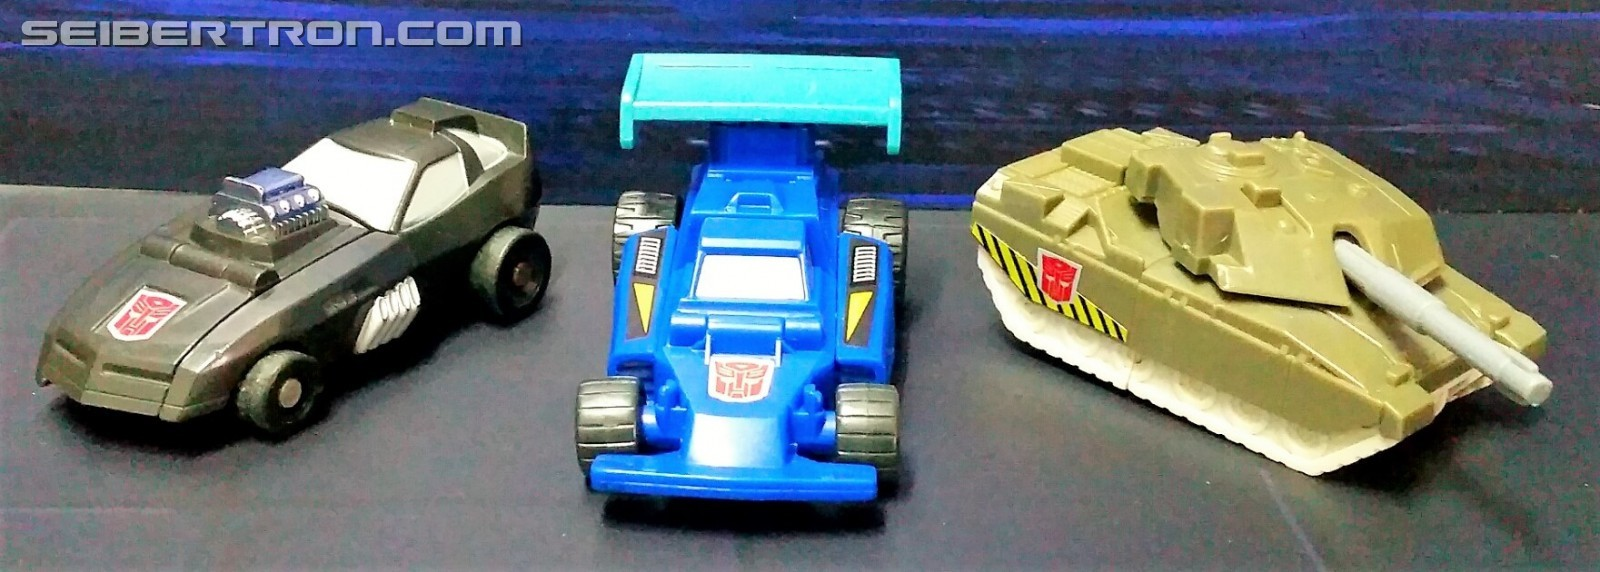 Transformers News: Rediscovering The Joy of Collecting